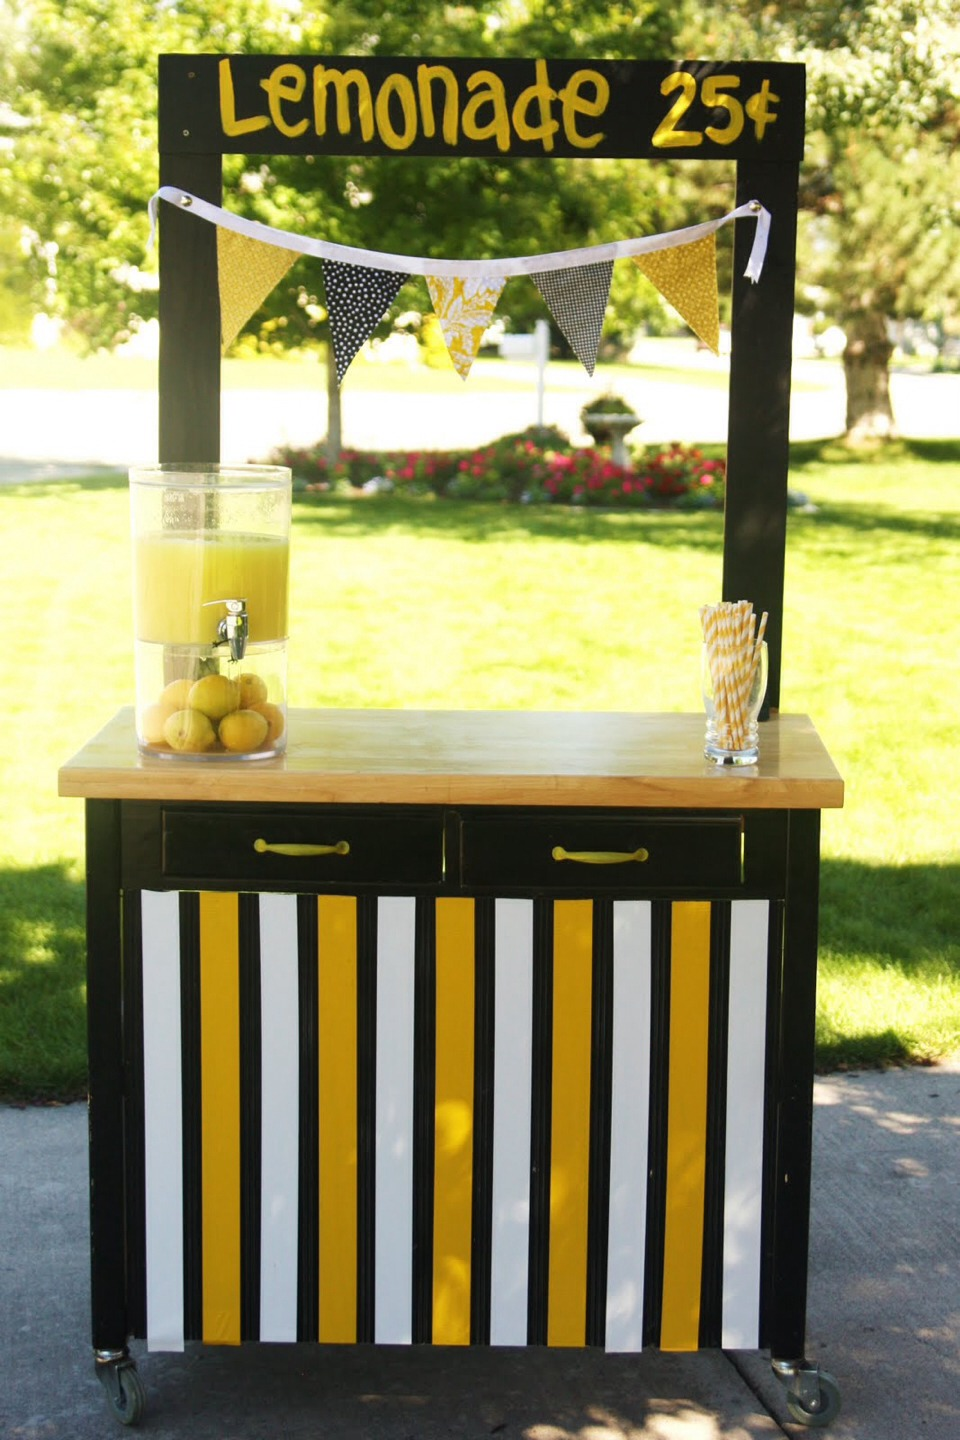 Have a lemonade stand! :) some of you may think its childish but come on! In the summer and fall anyone would want some lemonade! 50¢ a cup should do it! Everyone loves lemonade!🍋😍